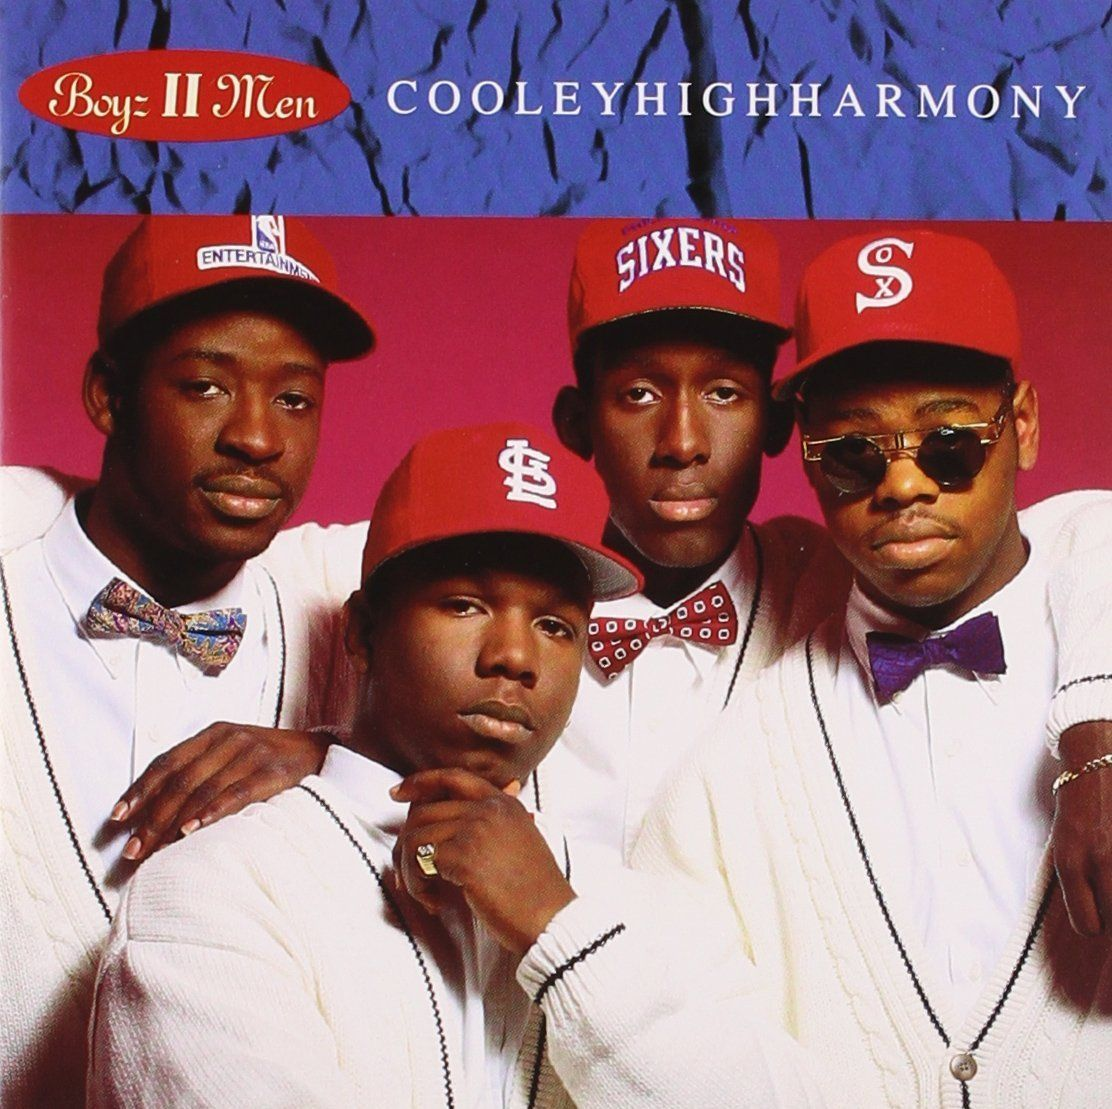 About Boyz II Men. With their early s hit